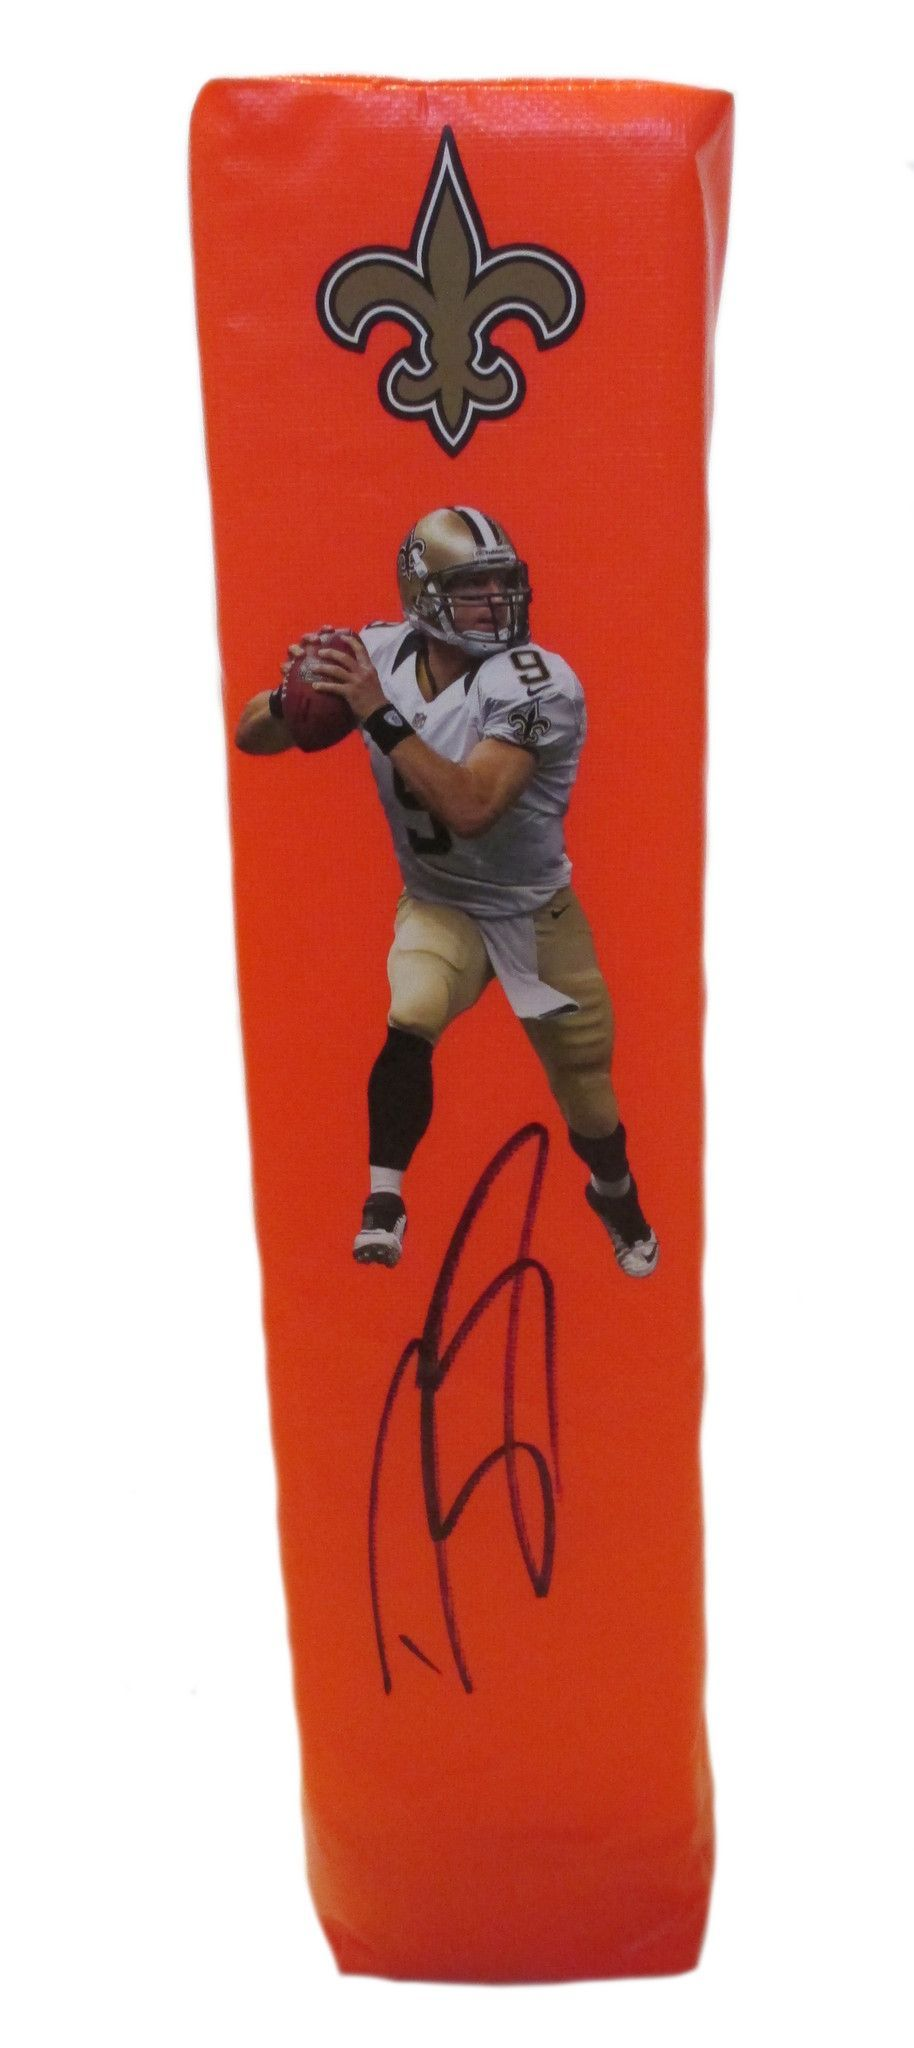 Drew Brees signed New Orleans Saints full size football touchdown end zone pylon w/ proof photo.  Proof photo of Drew signing will be included with your purchase along with a COA issued from Southwestconnection-Memorabilia, guaranteeing the item to pass authentication services from PSA/DNA or JSA. Free USPS shipping. www.AutographedwithProof.com is your one stop for autographed collectibles from New Orleans sports teams. Check back with us often, as we are always obtaining new items.